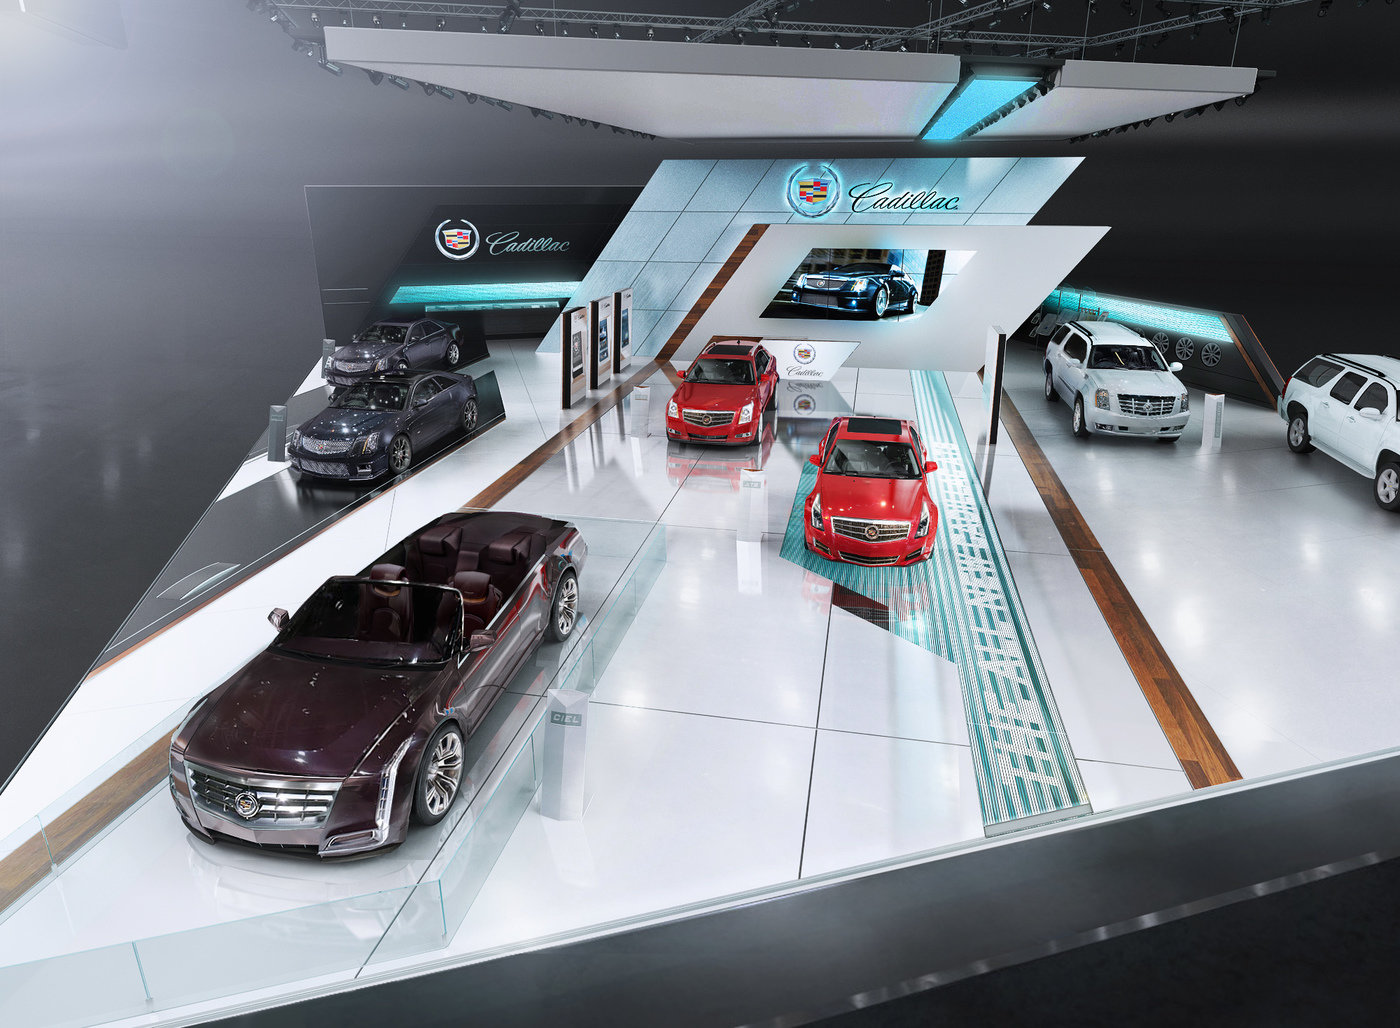 Exhibition Stand Design Awards : Cadillac mims stand by igor iastrebov at coroflot